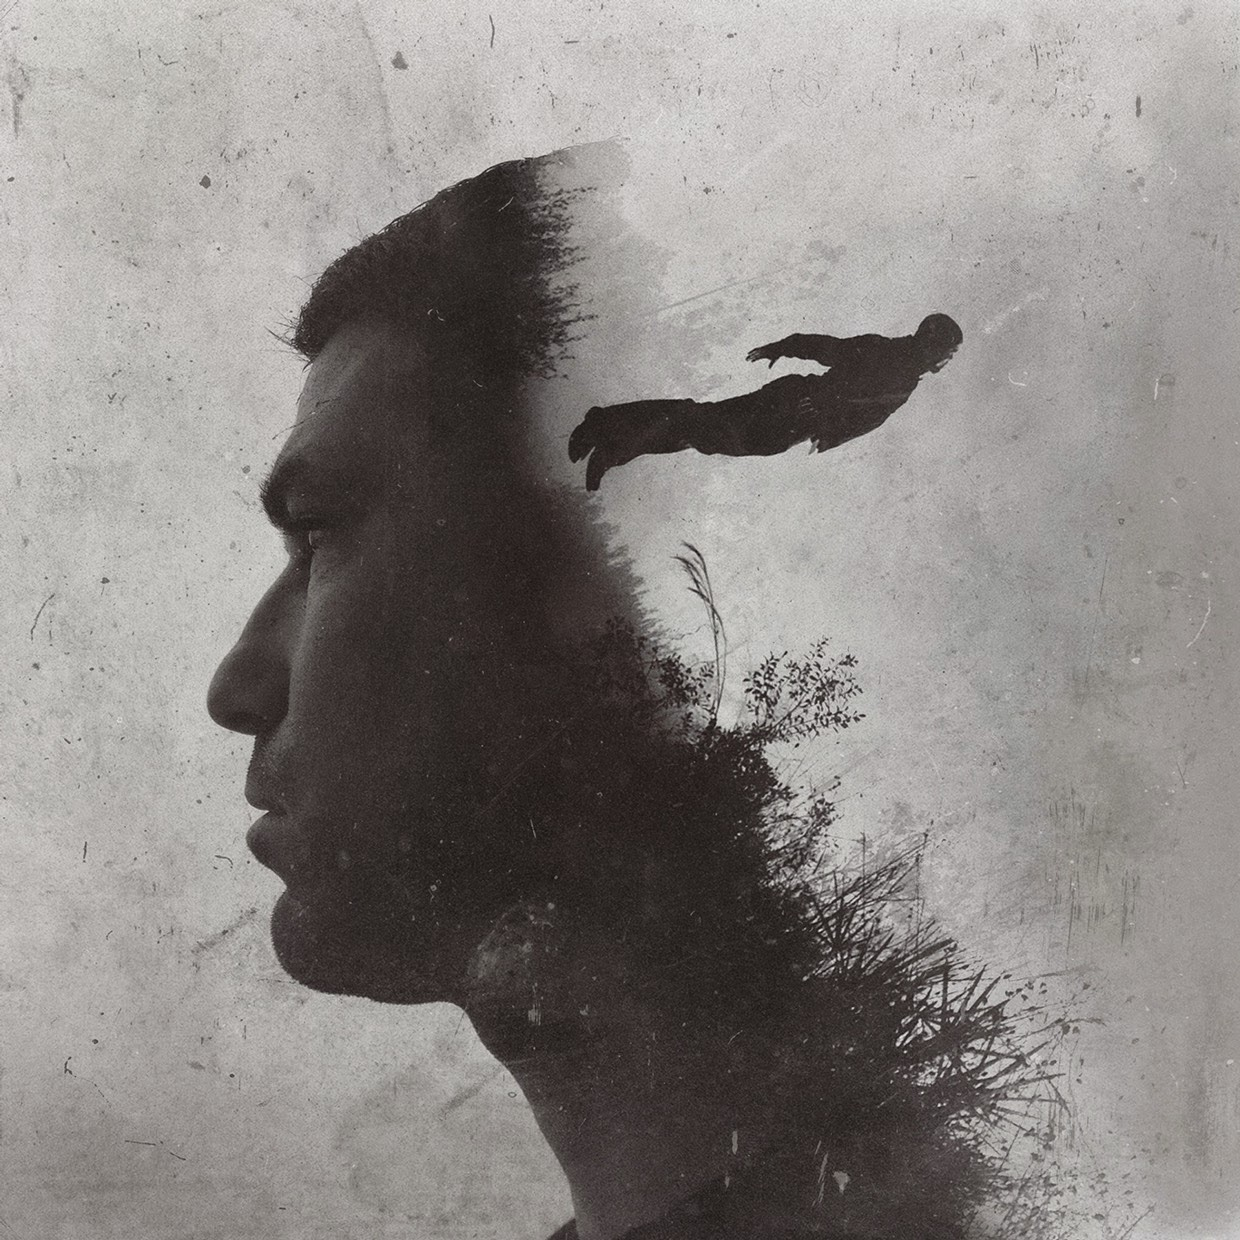 11-Brandon-Kidwell-Stories-in-Double-Exposure-Portrait-Photographs-www-designstack-co